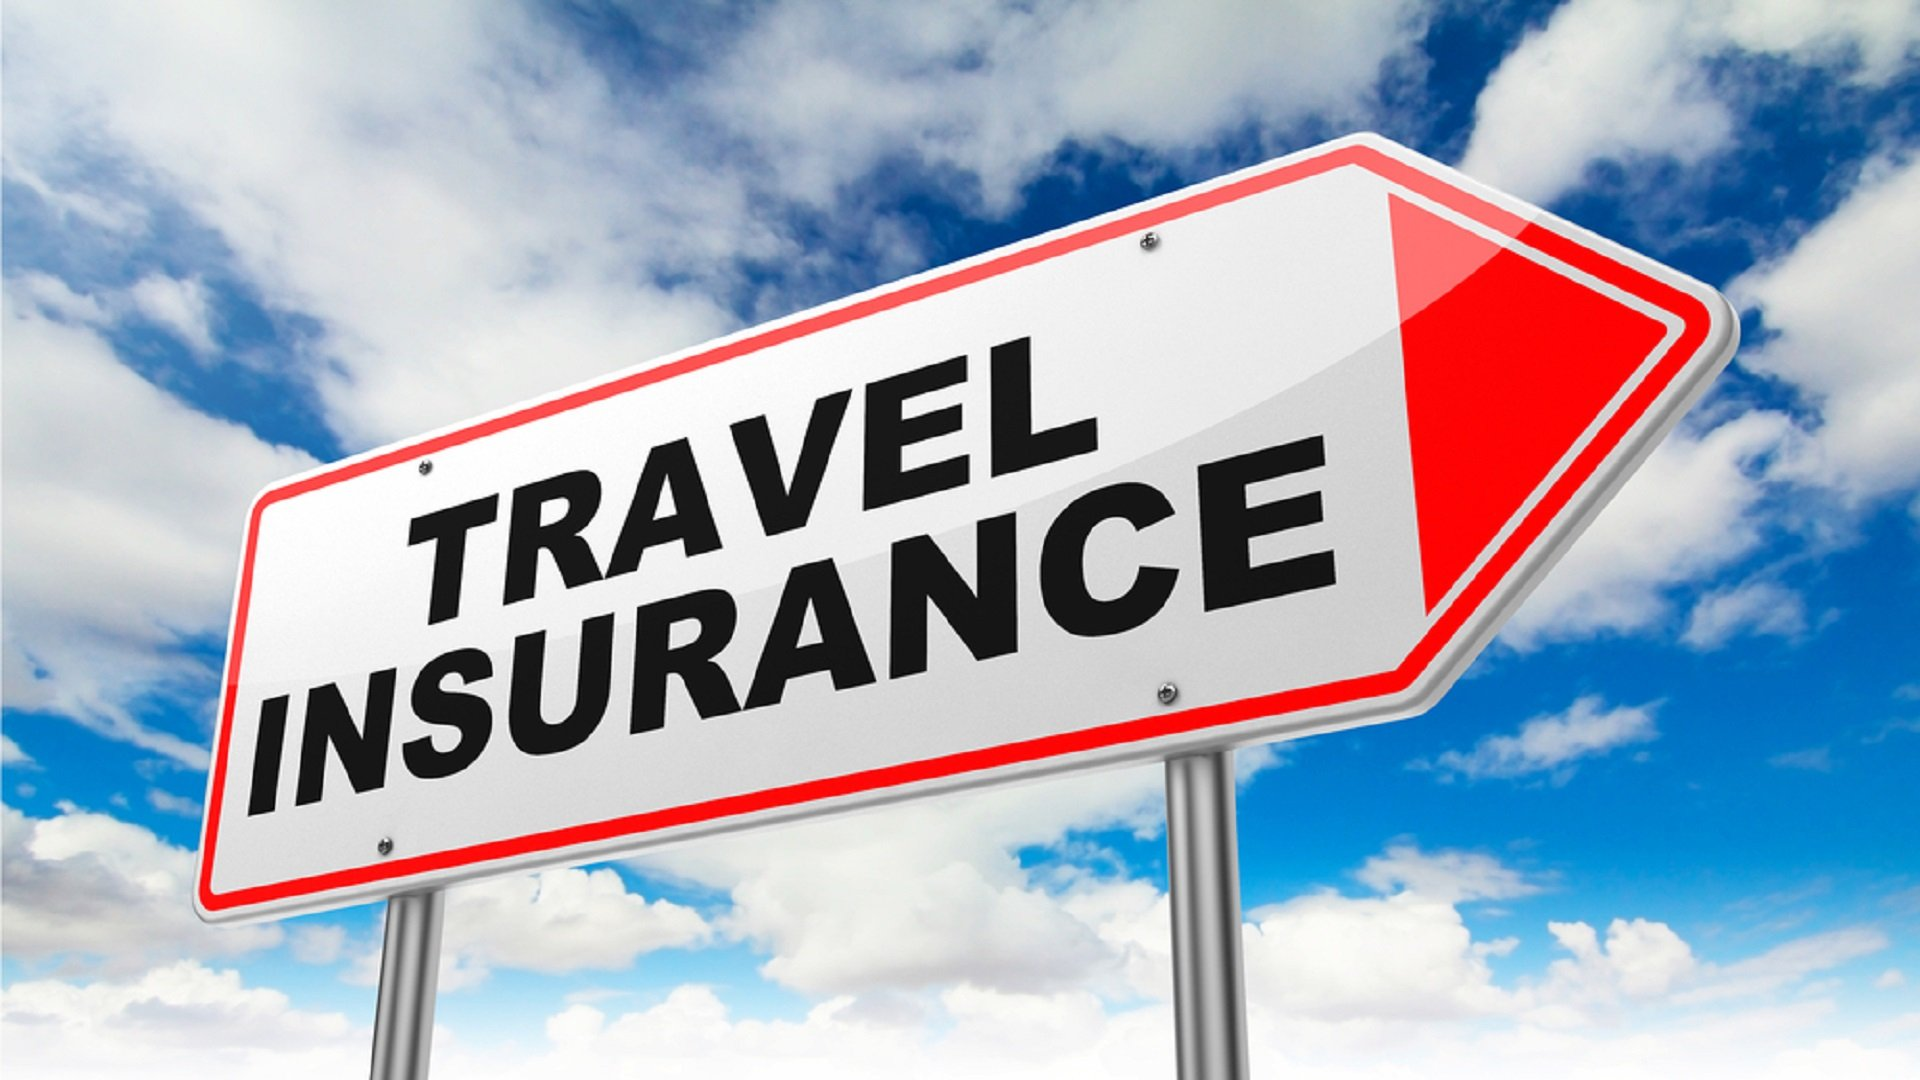 Everything You Need To Know About Travel Insurance Zrn Tripstar accident accident Bali Bali best travel insurance best travel insurance